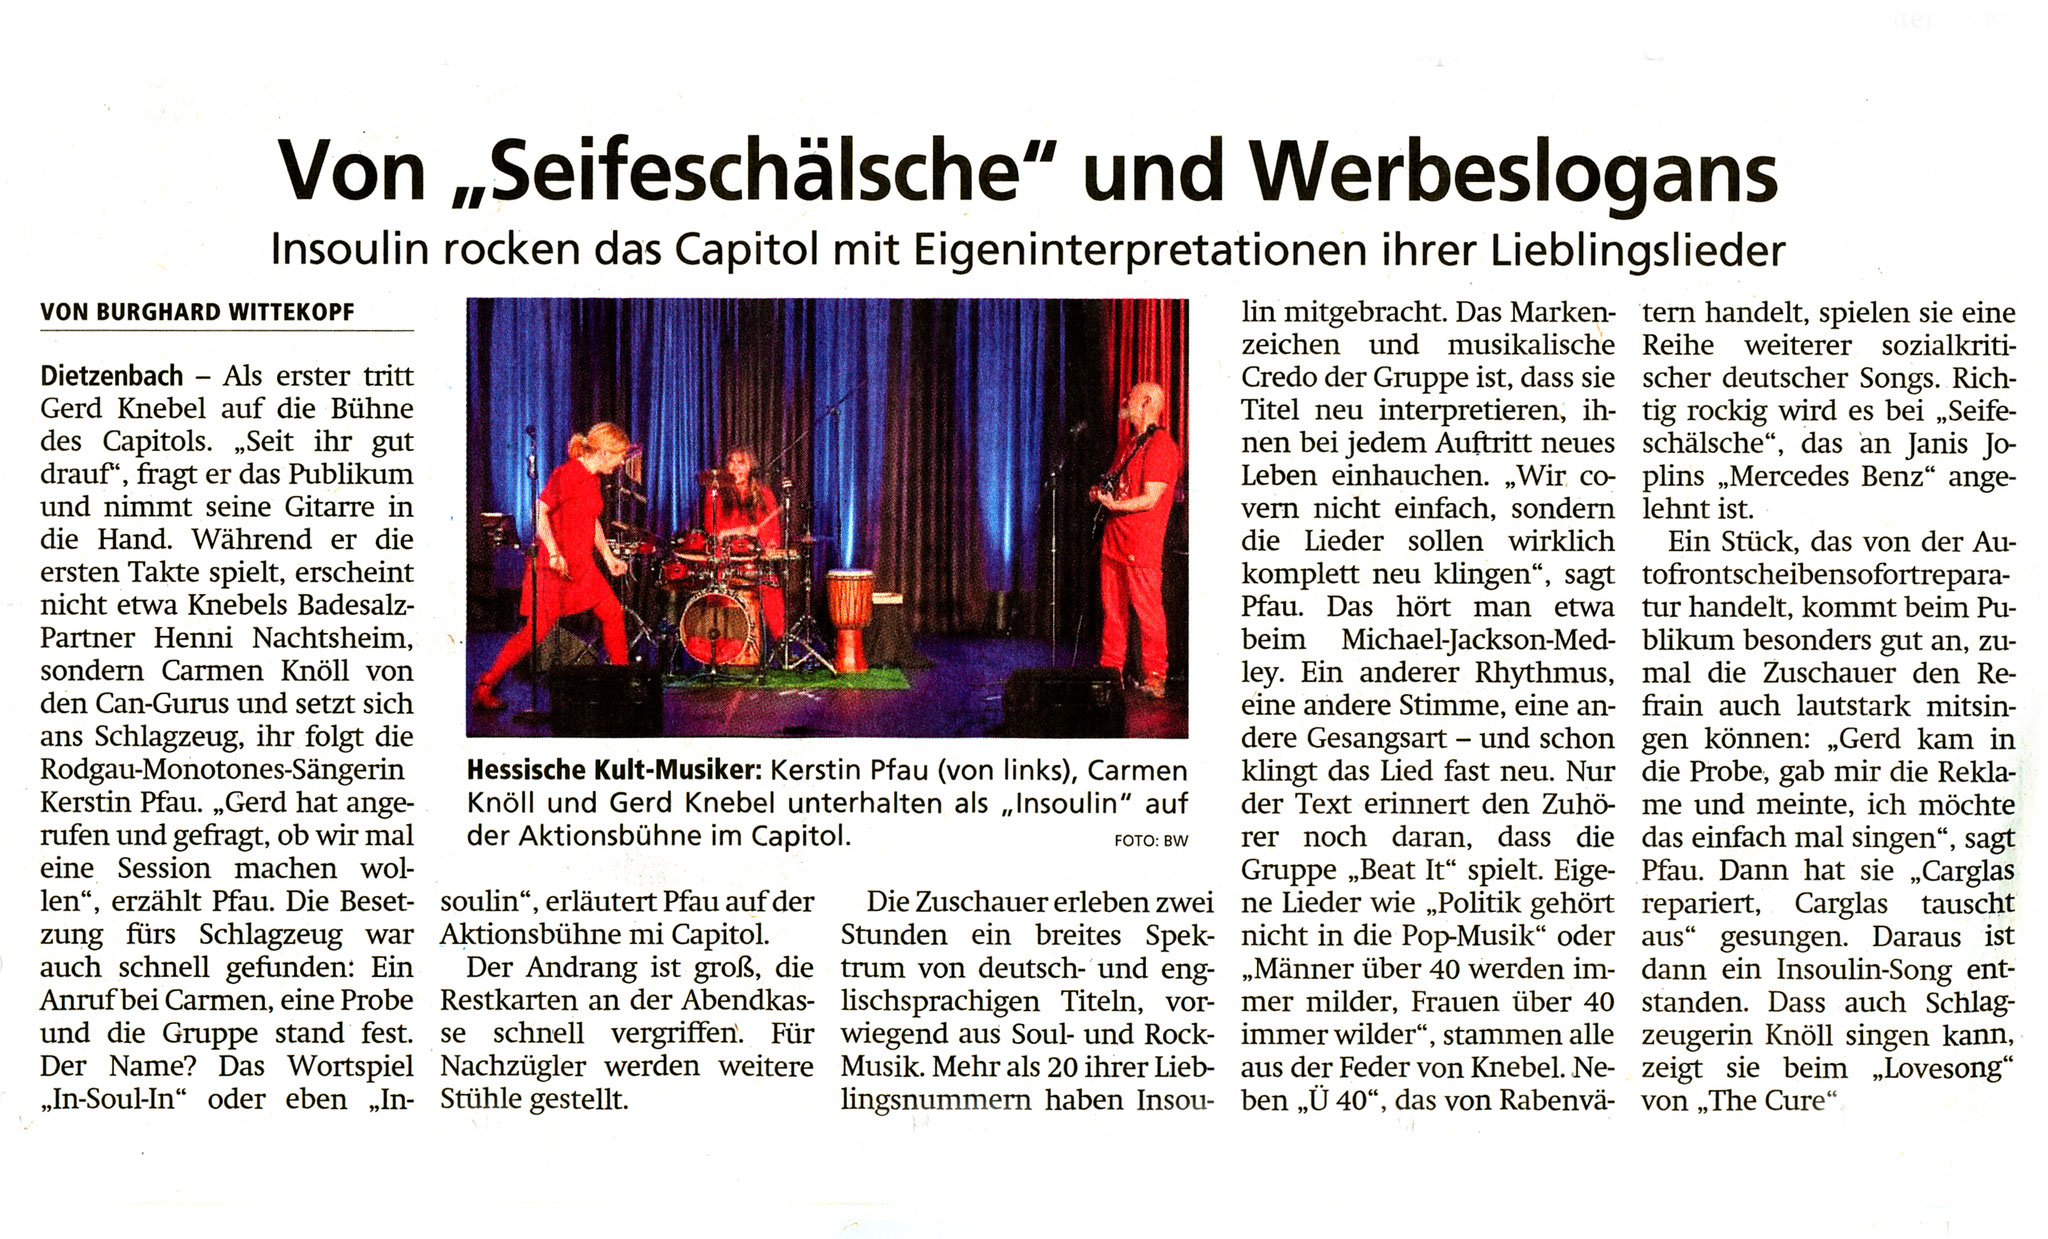 Offenbach Post, 1. April 2019